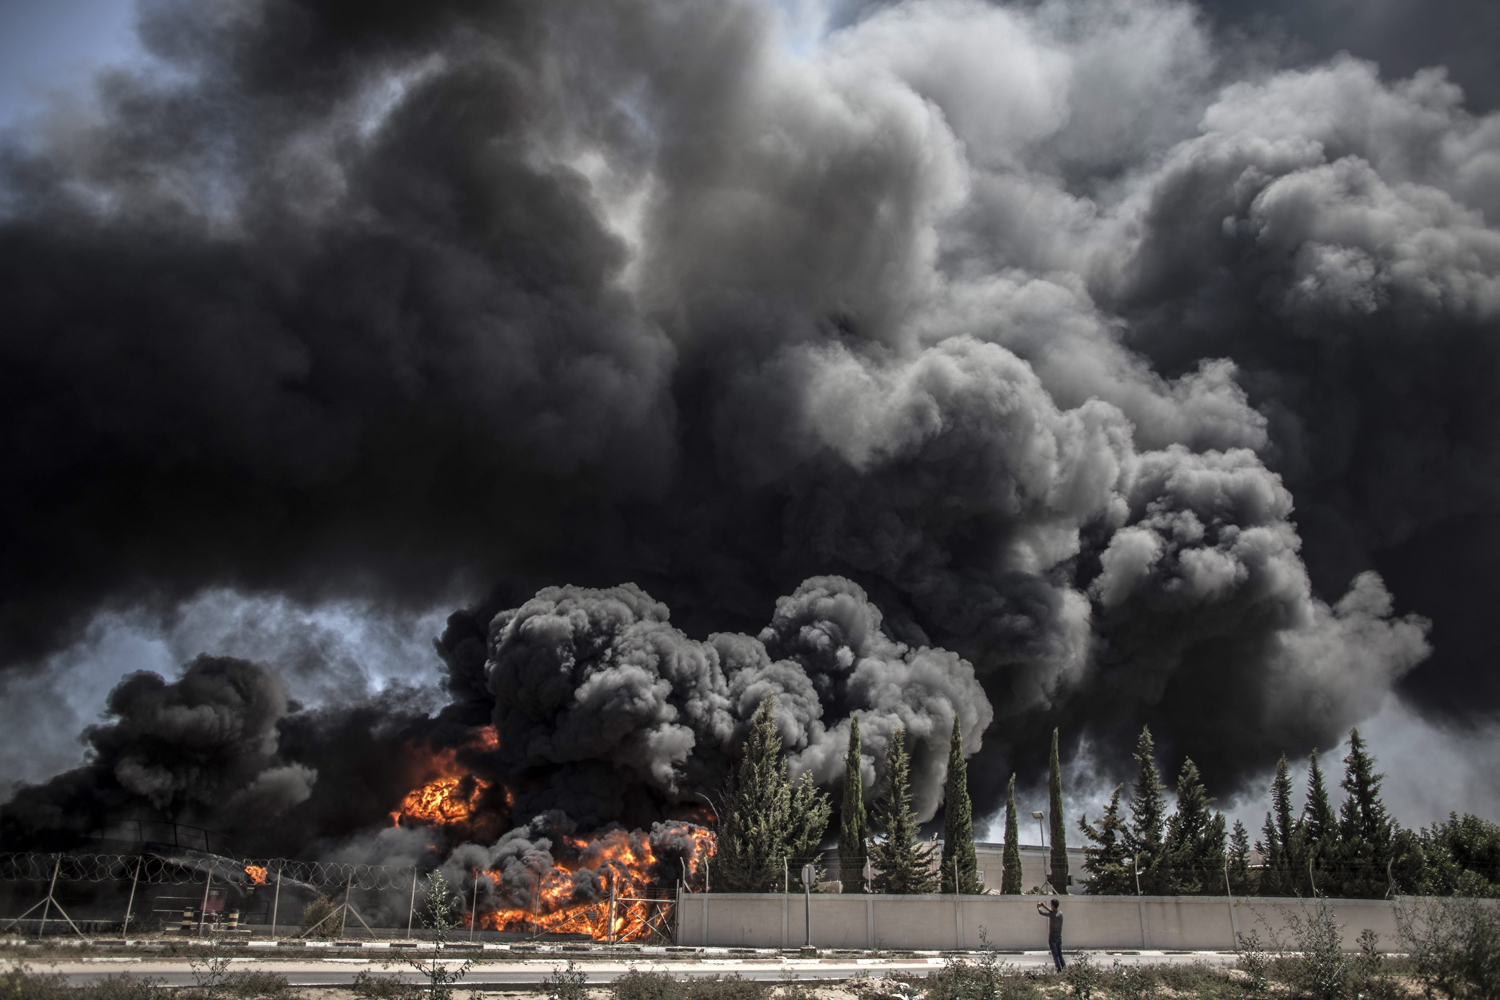 Jul. 29, 2014. A Palestinian man takes a picture of a fire raging in Gaza's main power plant following an overnight Israeli airstrike, south of Gaza City.